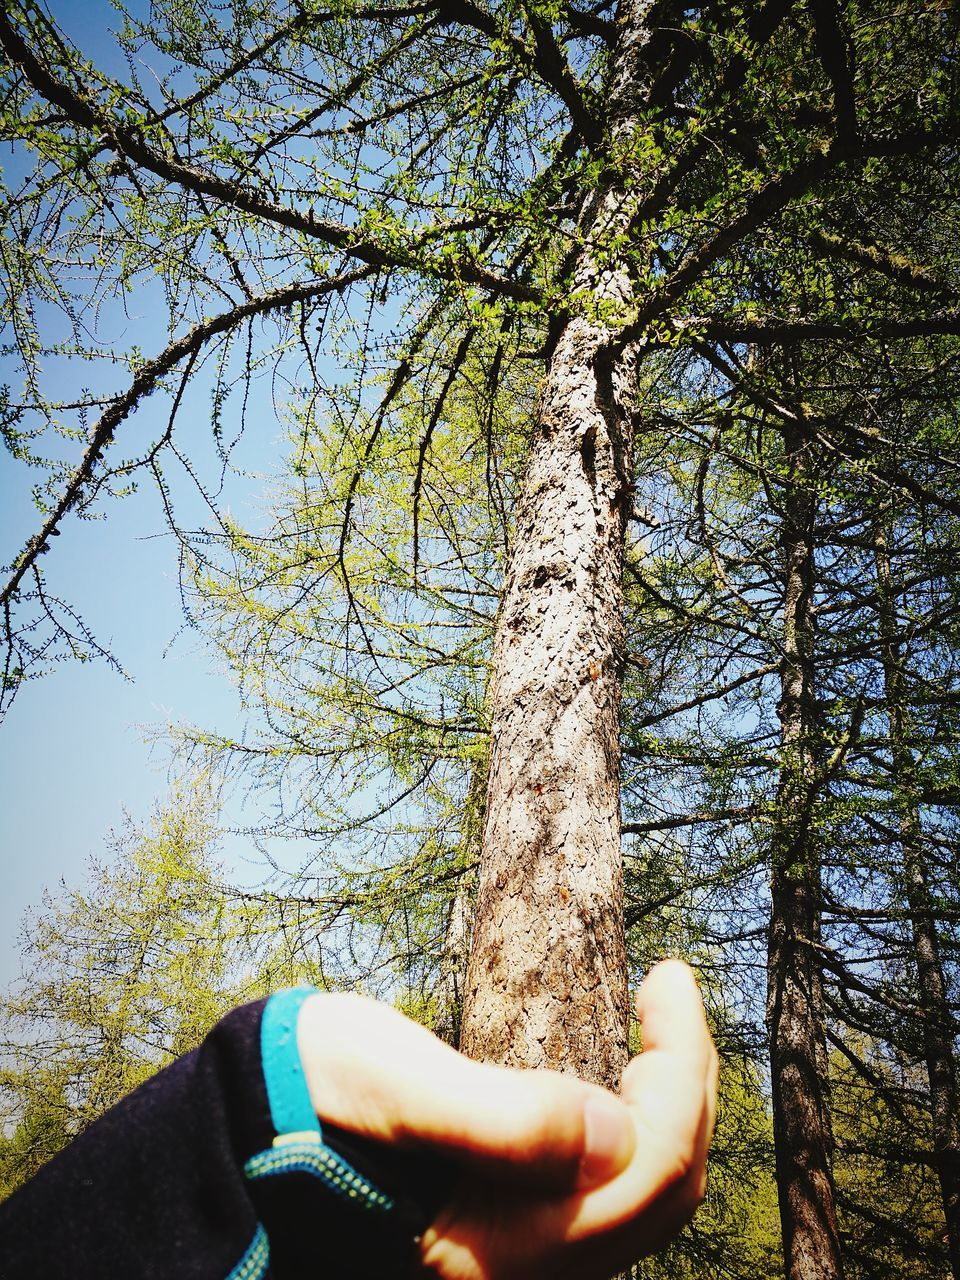 tree, one person, real people, tree trunk, nature, forest, day, human body part, human hand, outdoors, low angle view, branch, beauty in nature, sky, close-up, people